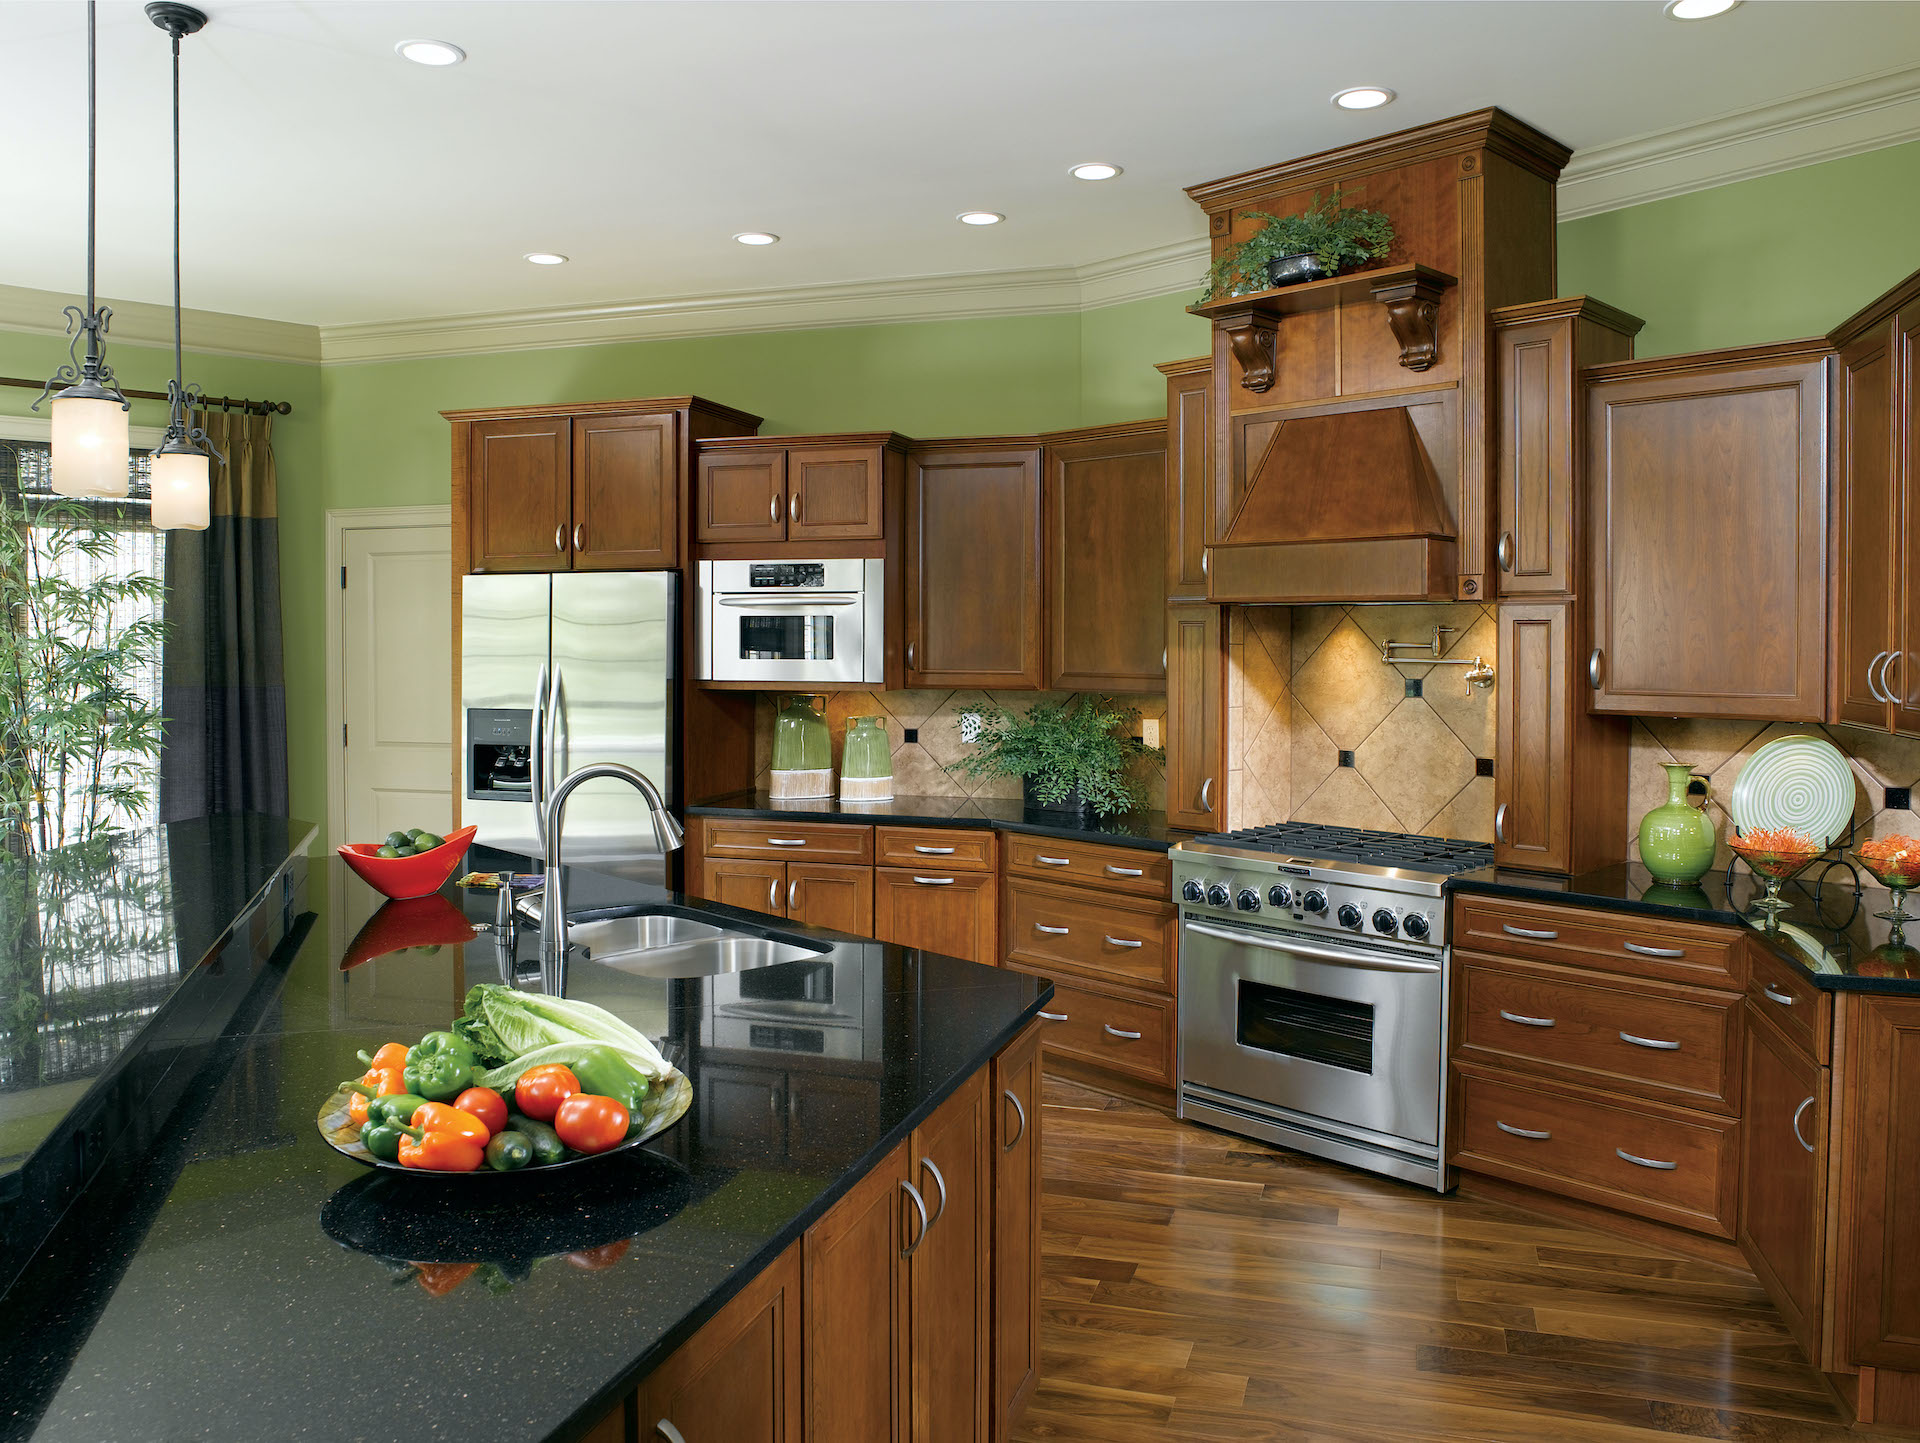 How To Pick The Perfect Kitchen Cabinets KitchenlandKitchenland